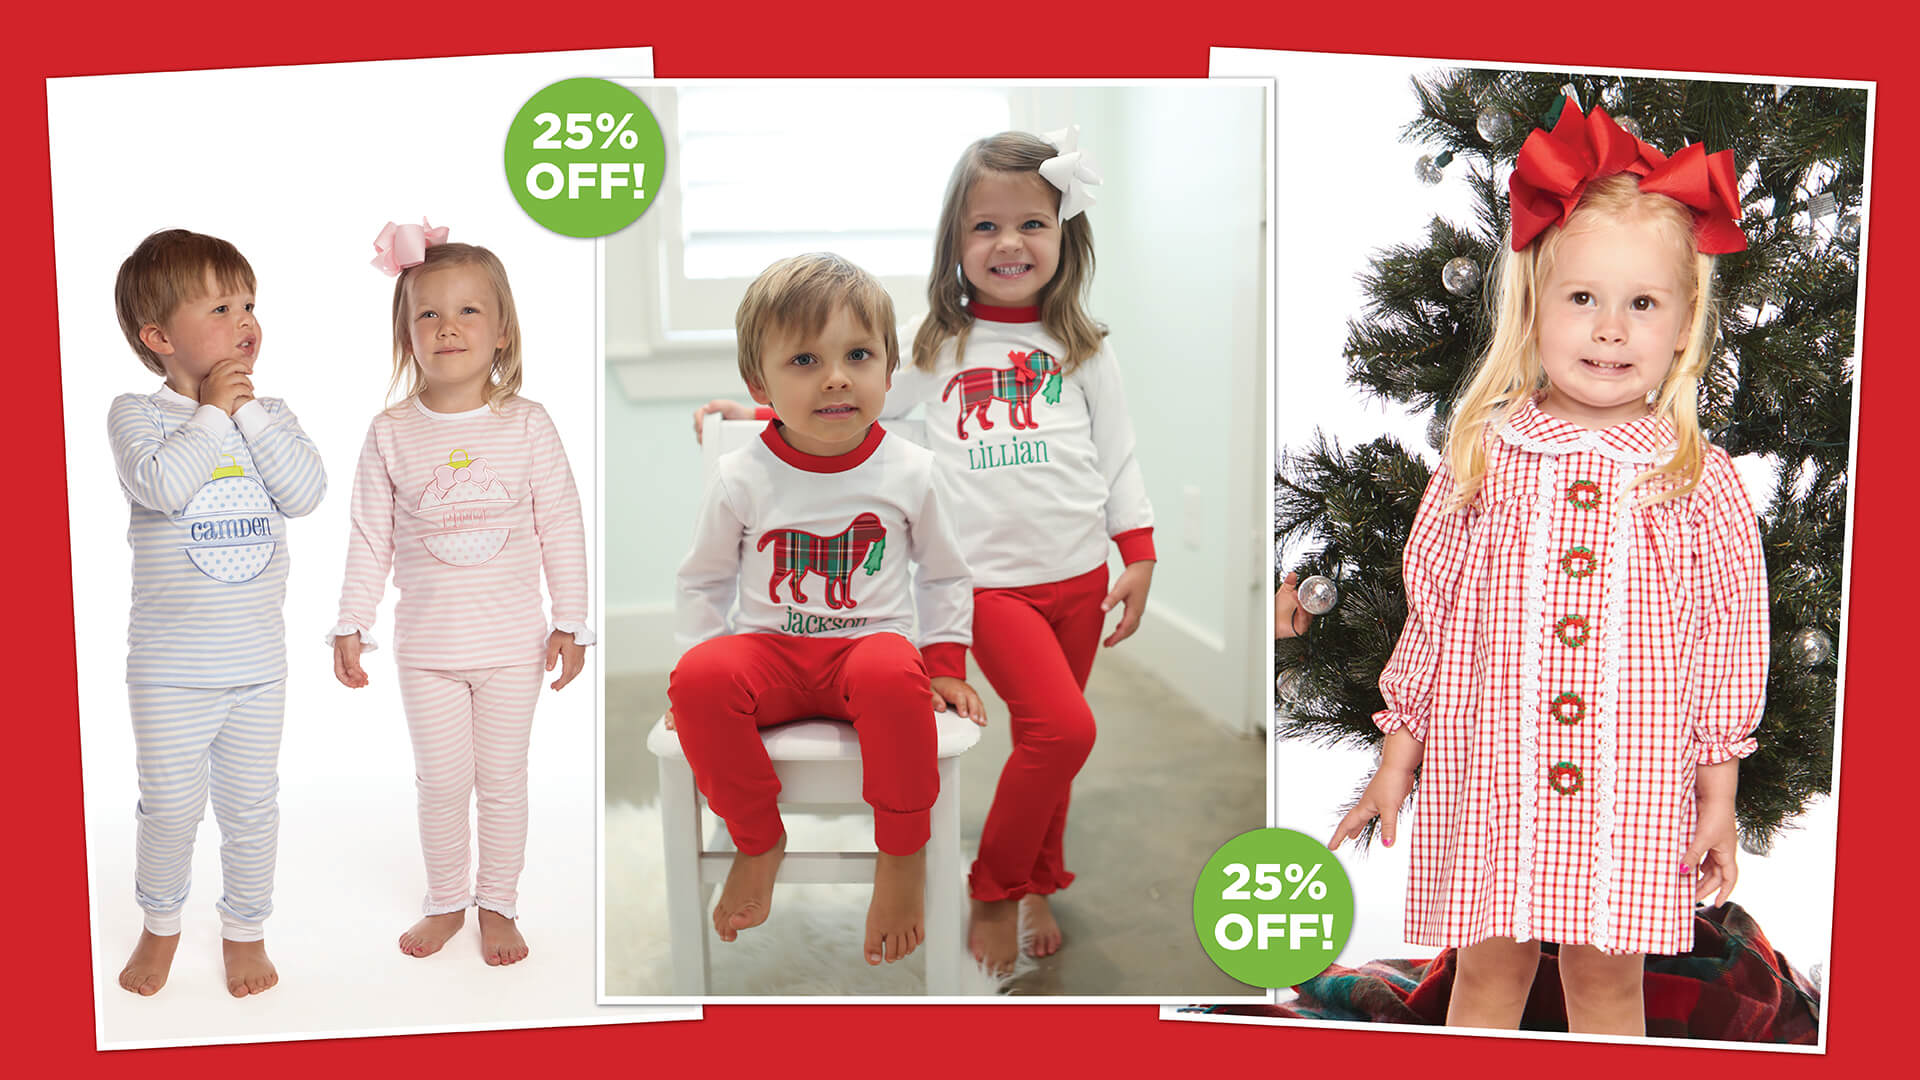 25% OFF Children's Christmas Clothes